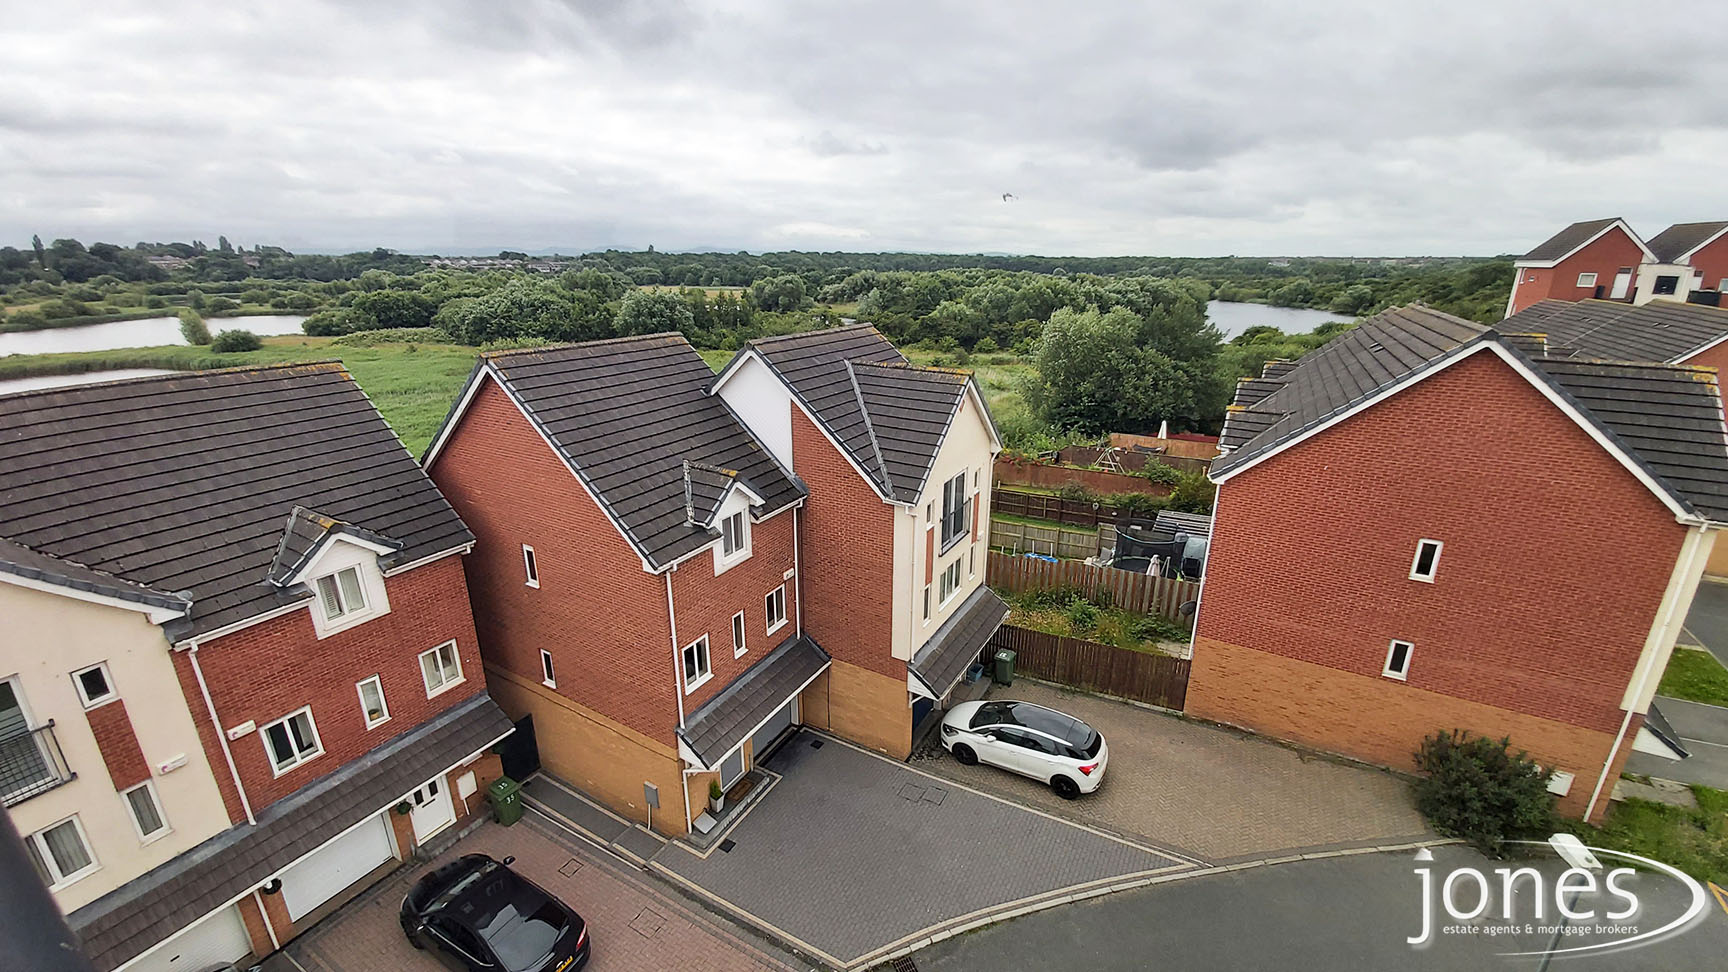 Home for Sale Let - Photo 13 Willow Sage Court, Stockton on Tees, TS18 3UQ